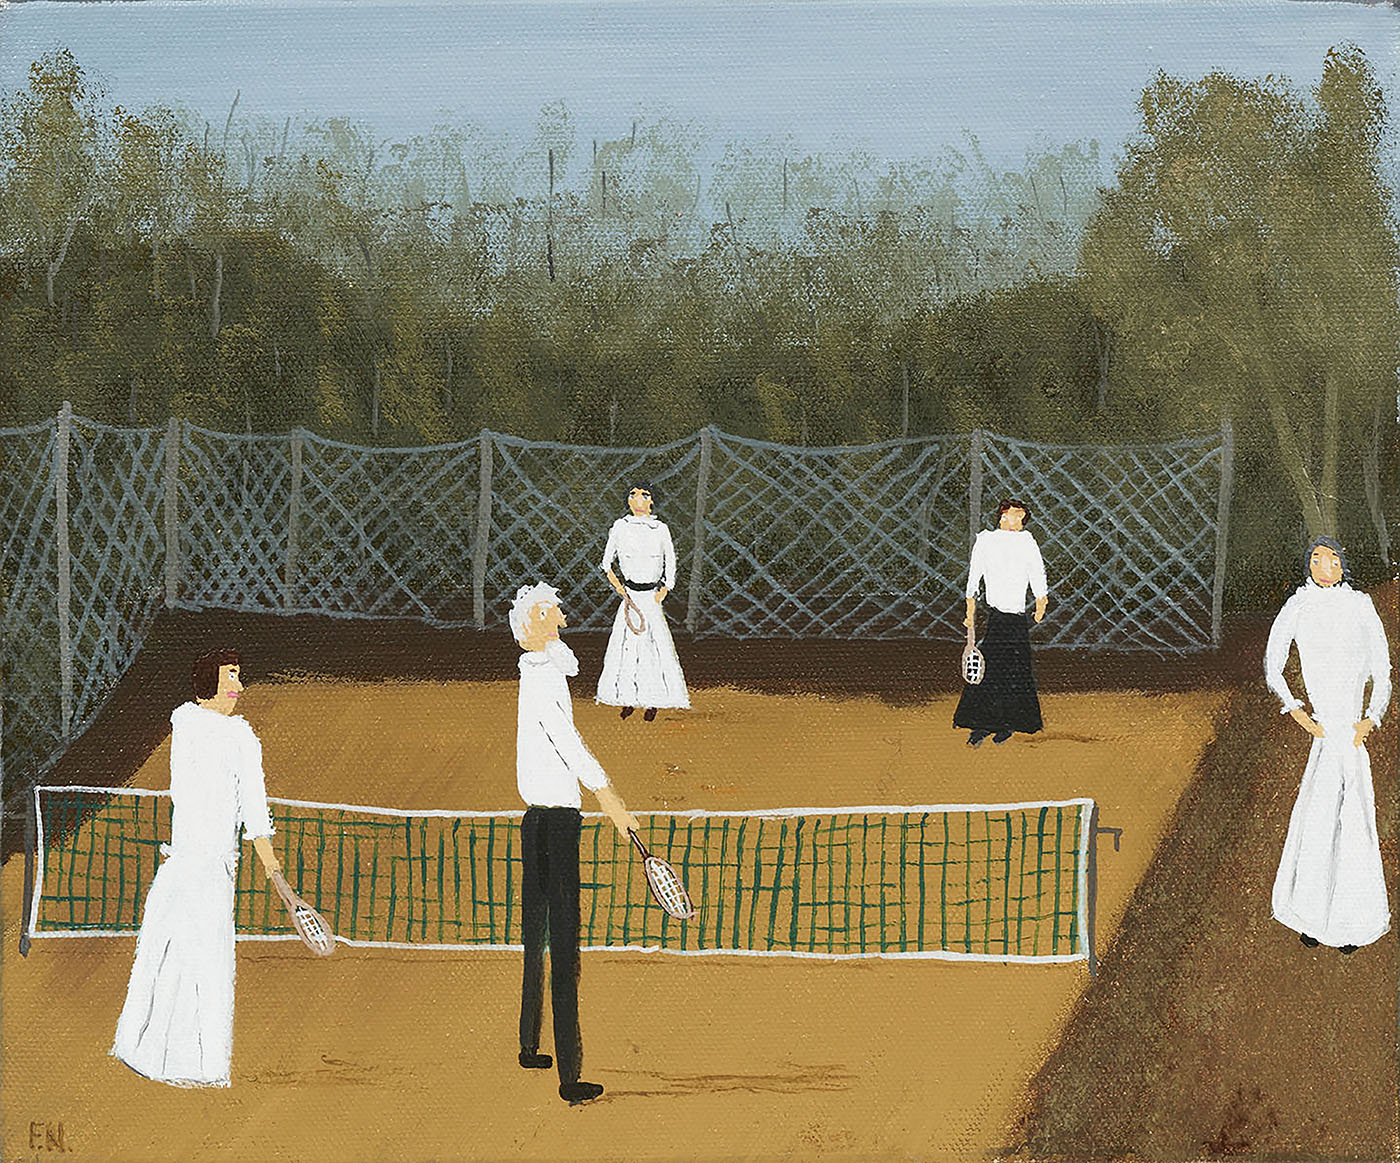 Tolstoy at Tennis